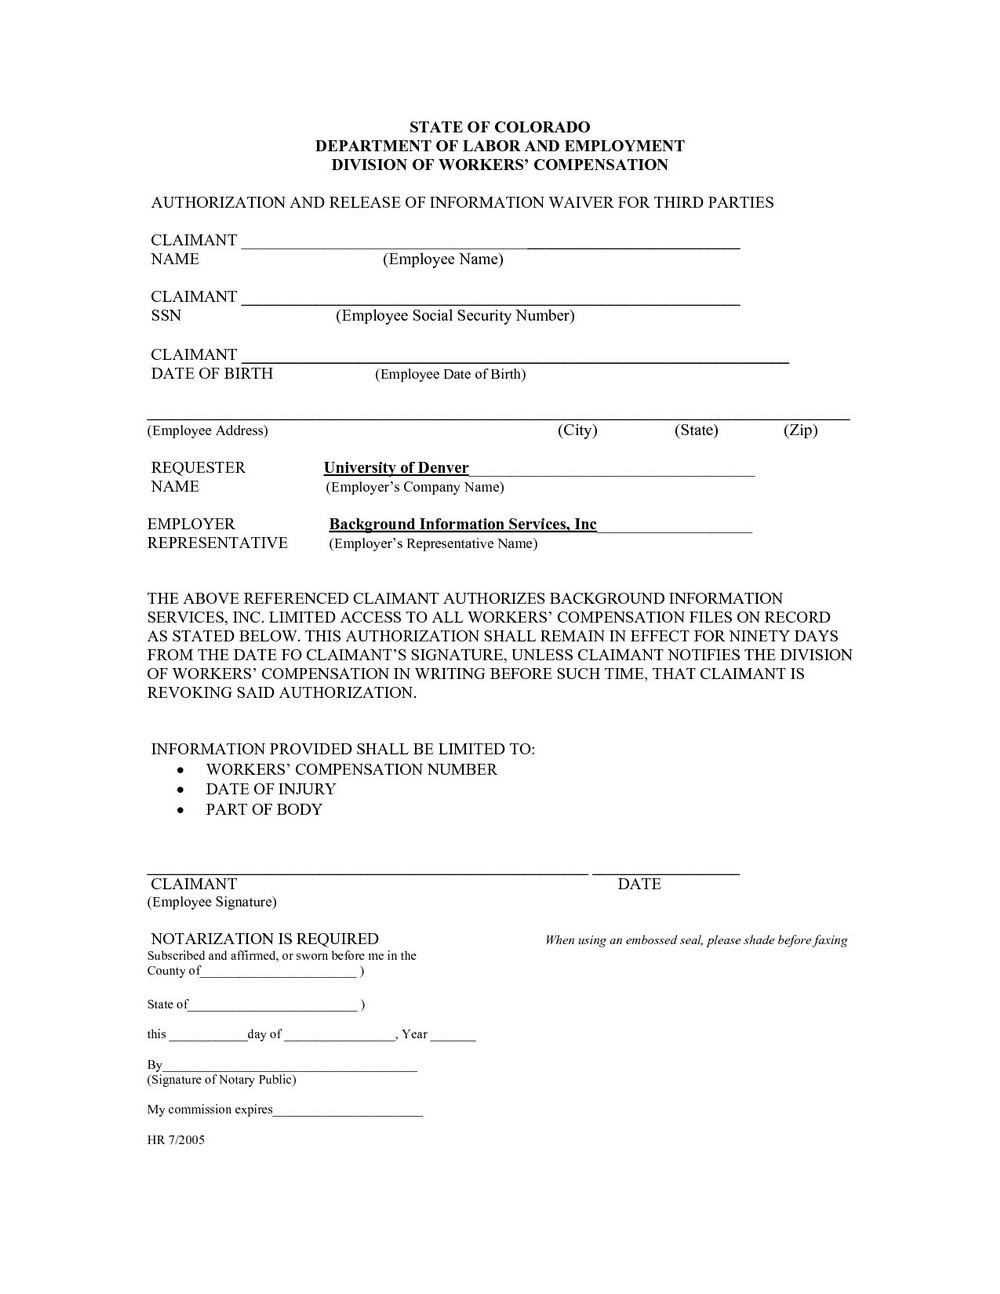 Workers Compensation Waiver Form